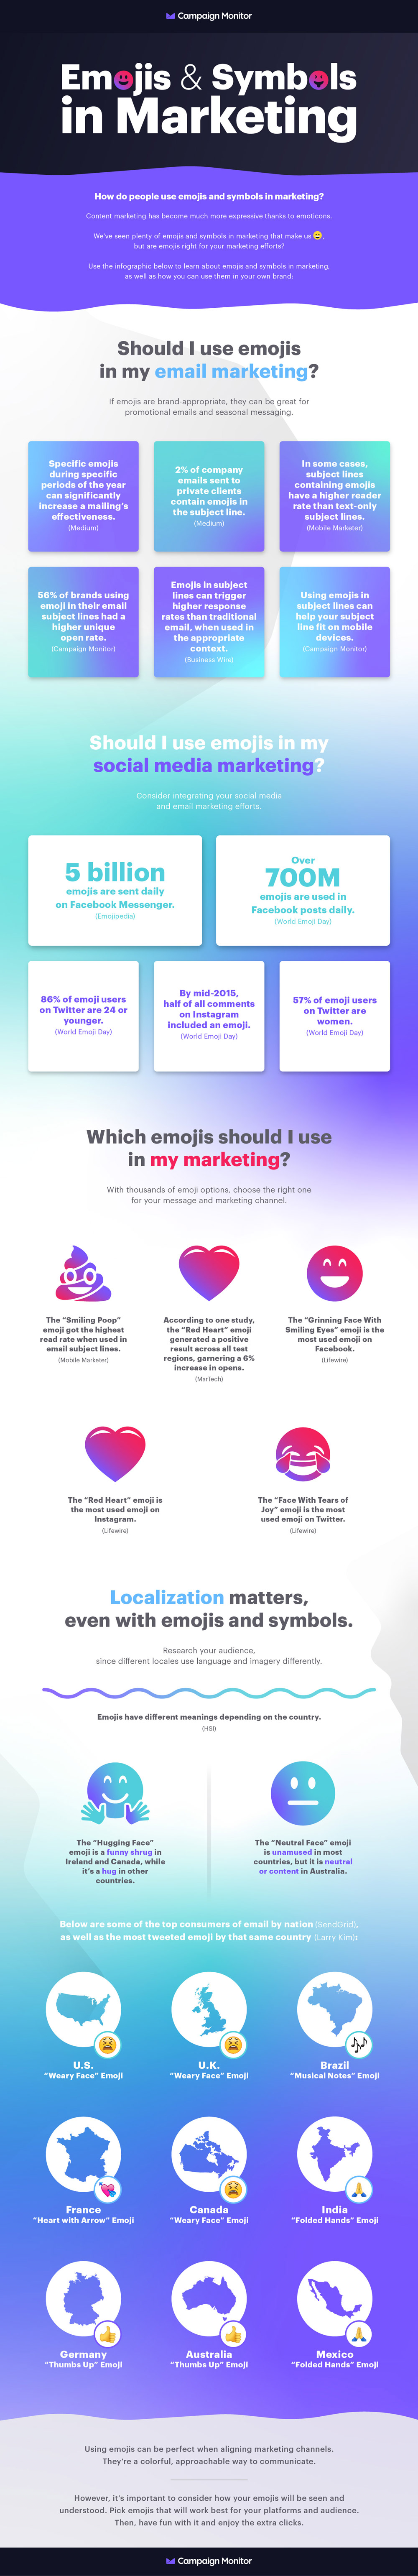 Emojis and Symbols in Marketing Infographic